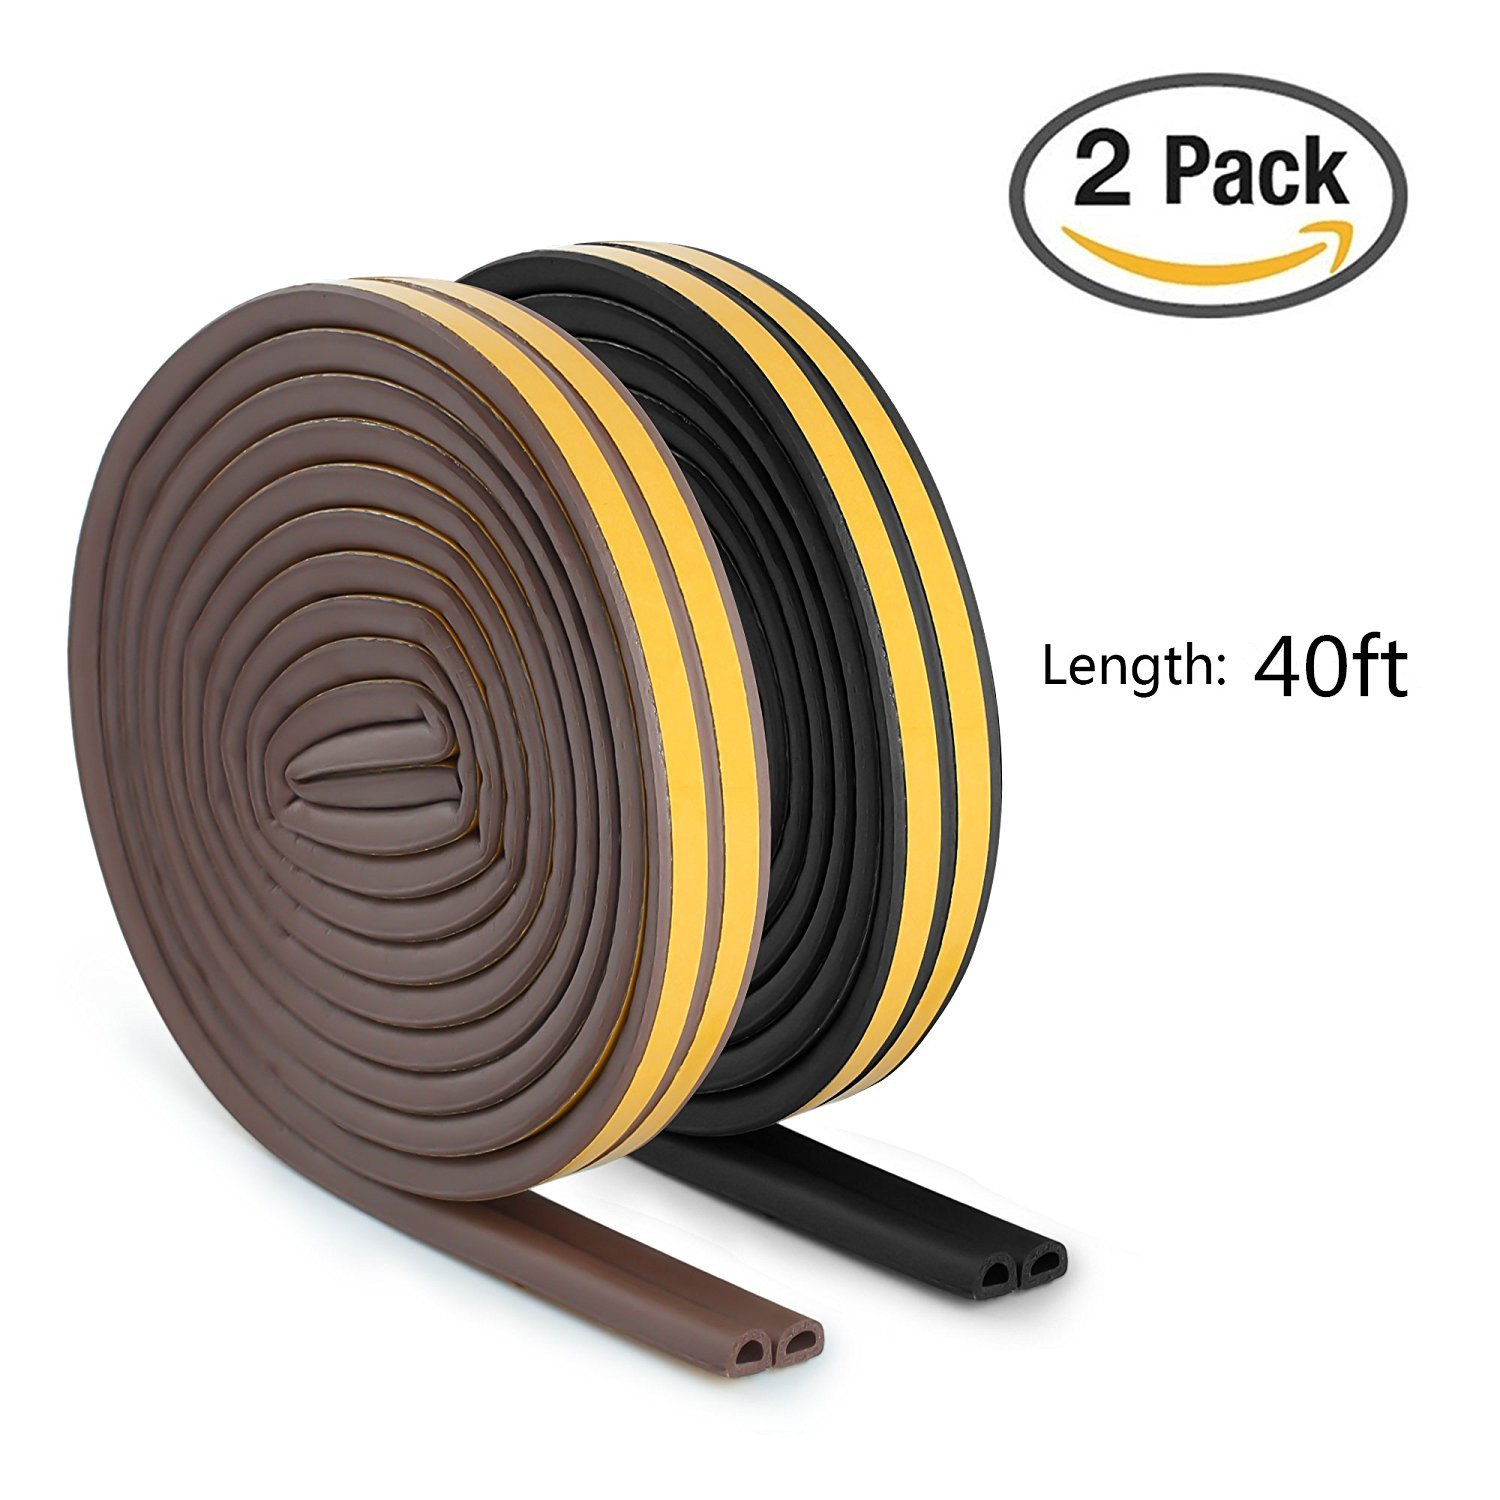 Indoor Weather Stripping, Door and Window Rubber Seal Strip for Cracks and Gaps, Soundproofing Waterproof Anti-Collision Seal Strip